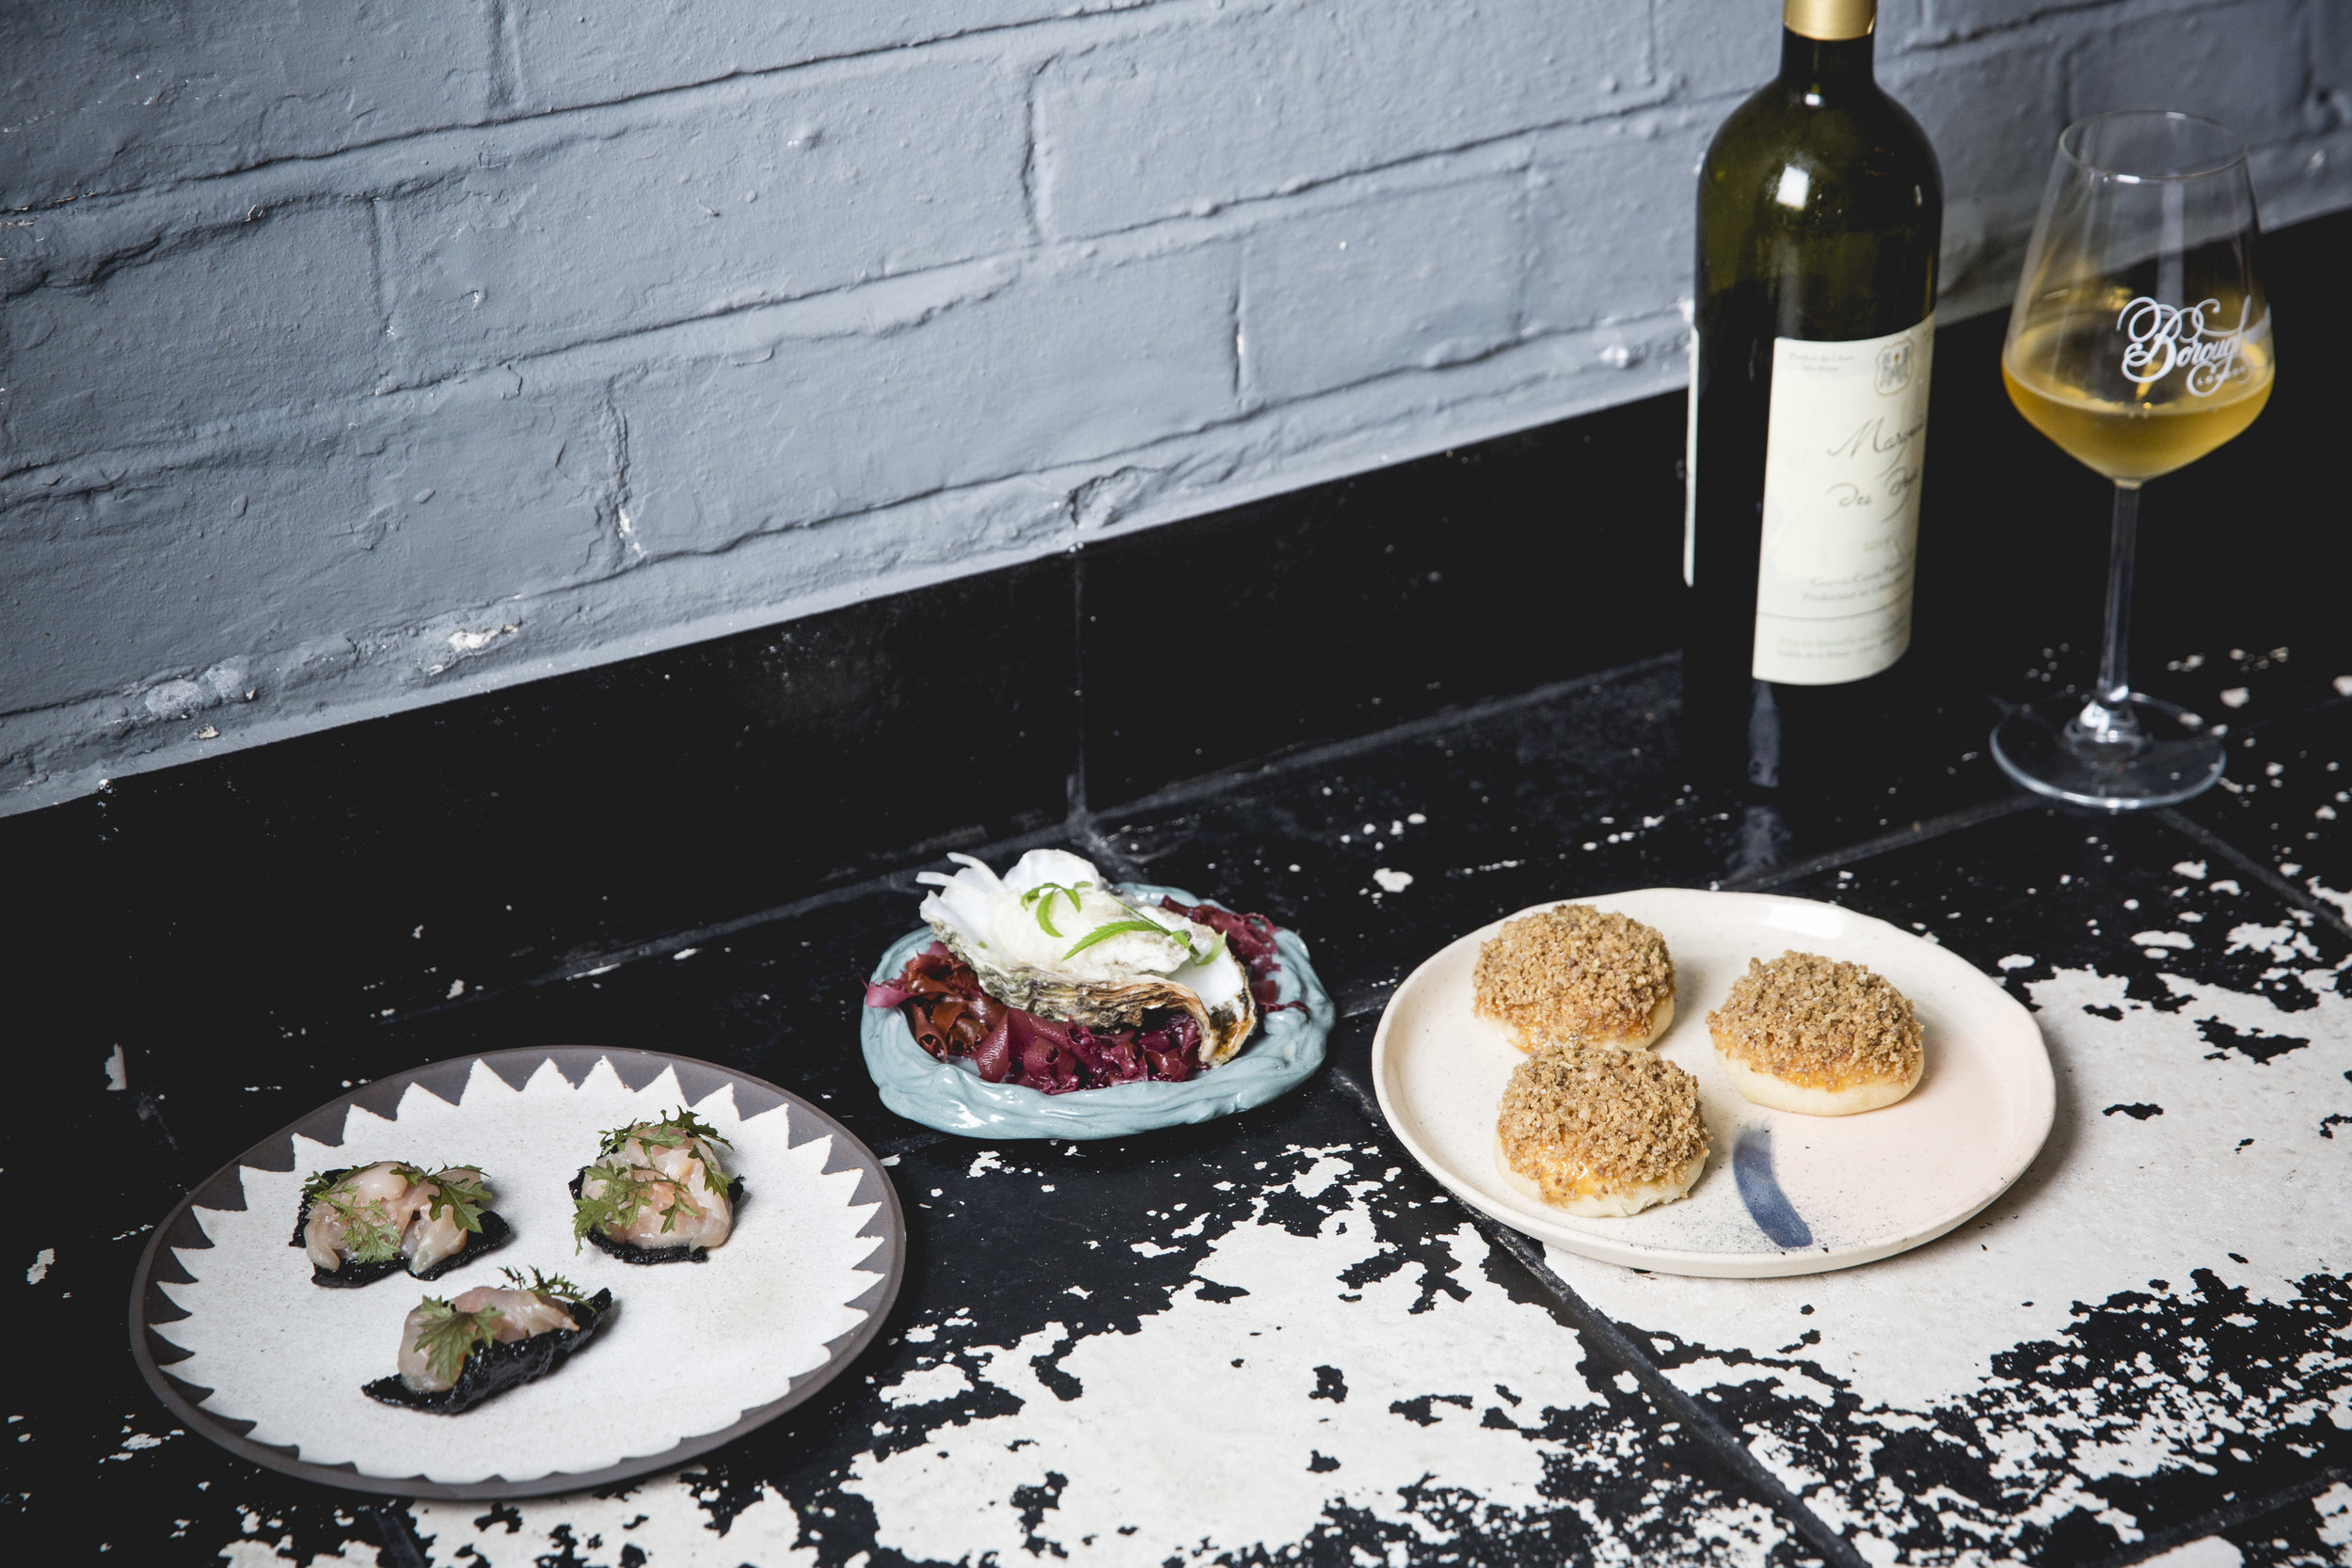 Three of the courses with one of Borough Wine's paired wines. Plates by Lazy Glaze, Hackney Potter and Victoria Bridal.